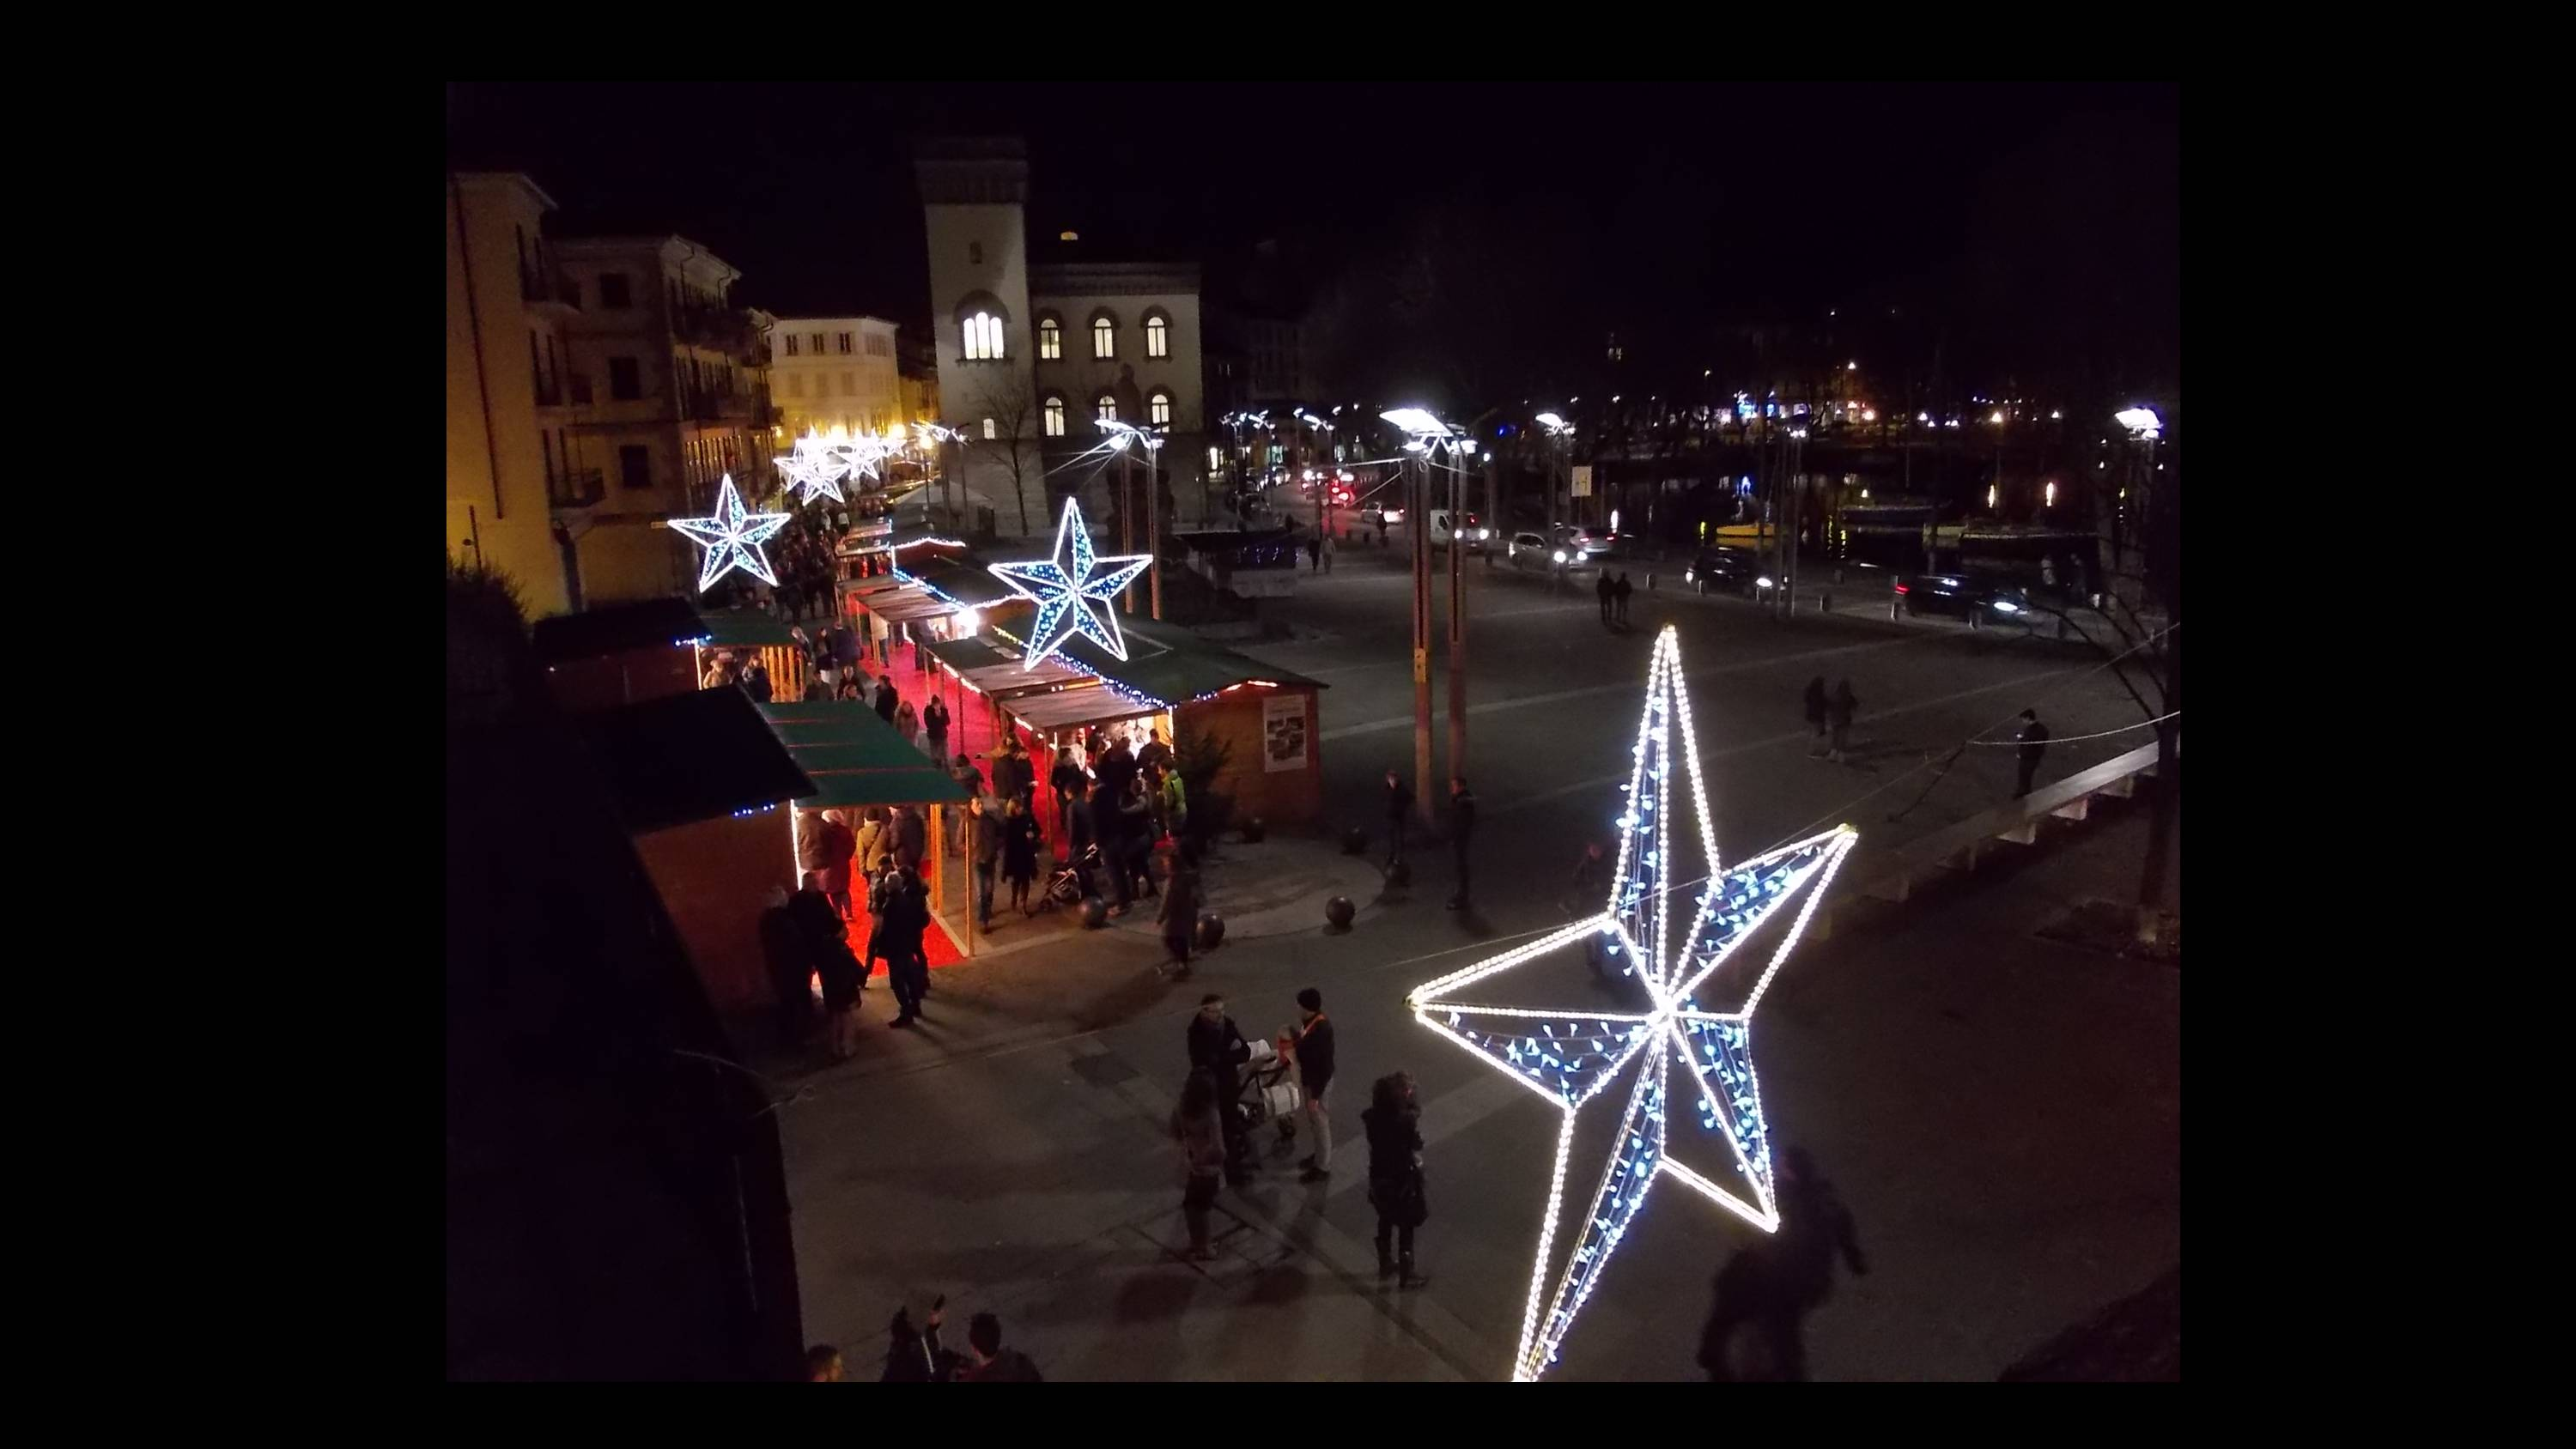 Mercatini natale como addthis sharing buttons with for Mercatini lecco